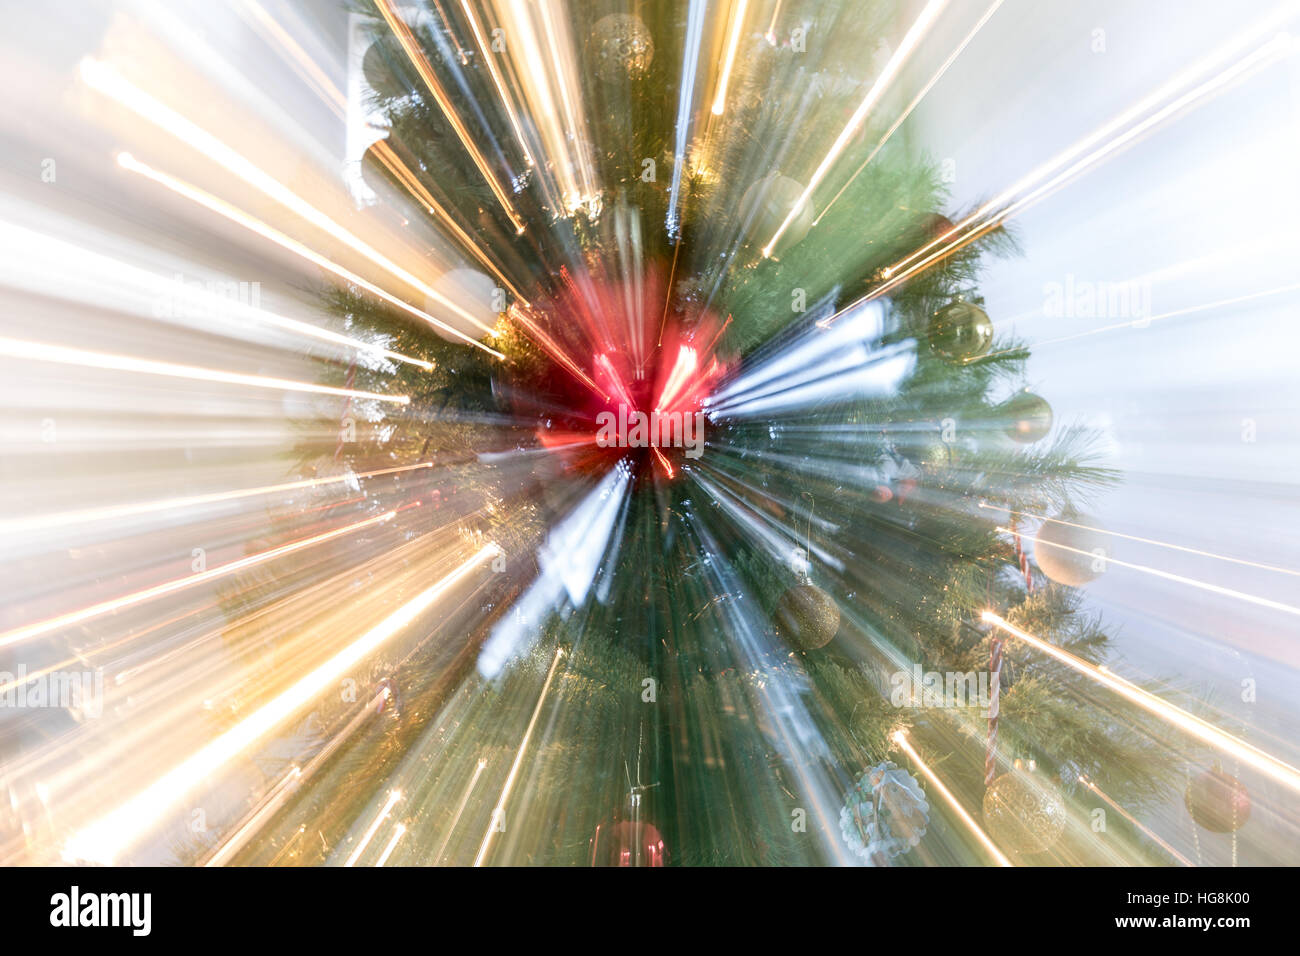 Festive Christmas star burst with lights and decorations - Stock Image